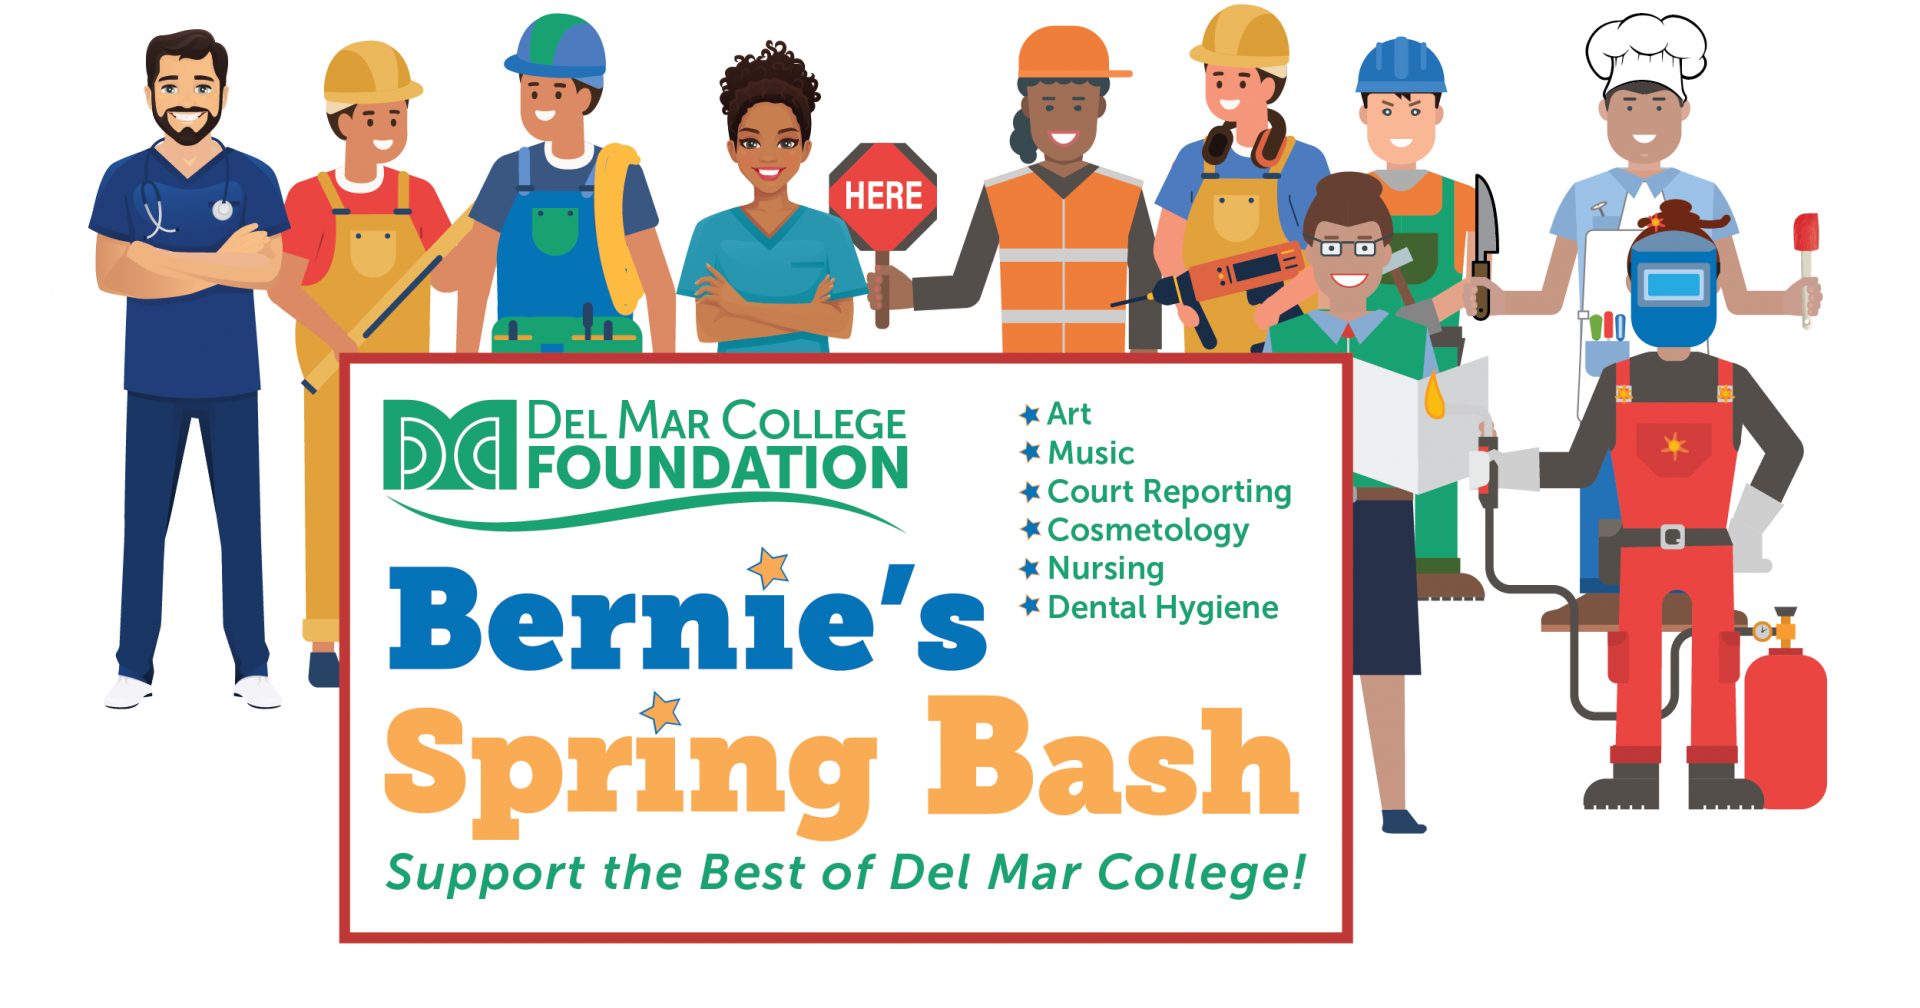 DMC Foundation_Bernie's Spring Bash 2021 Art